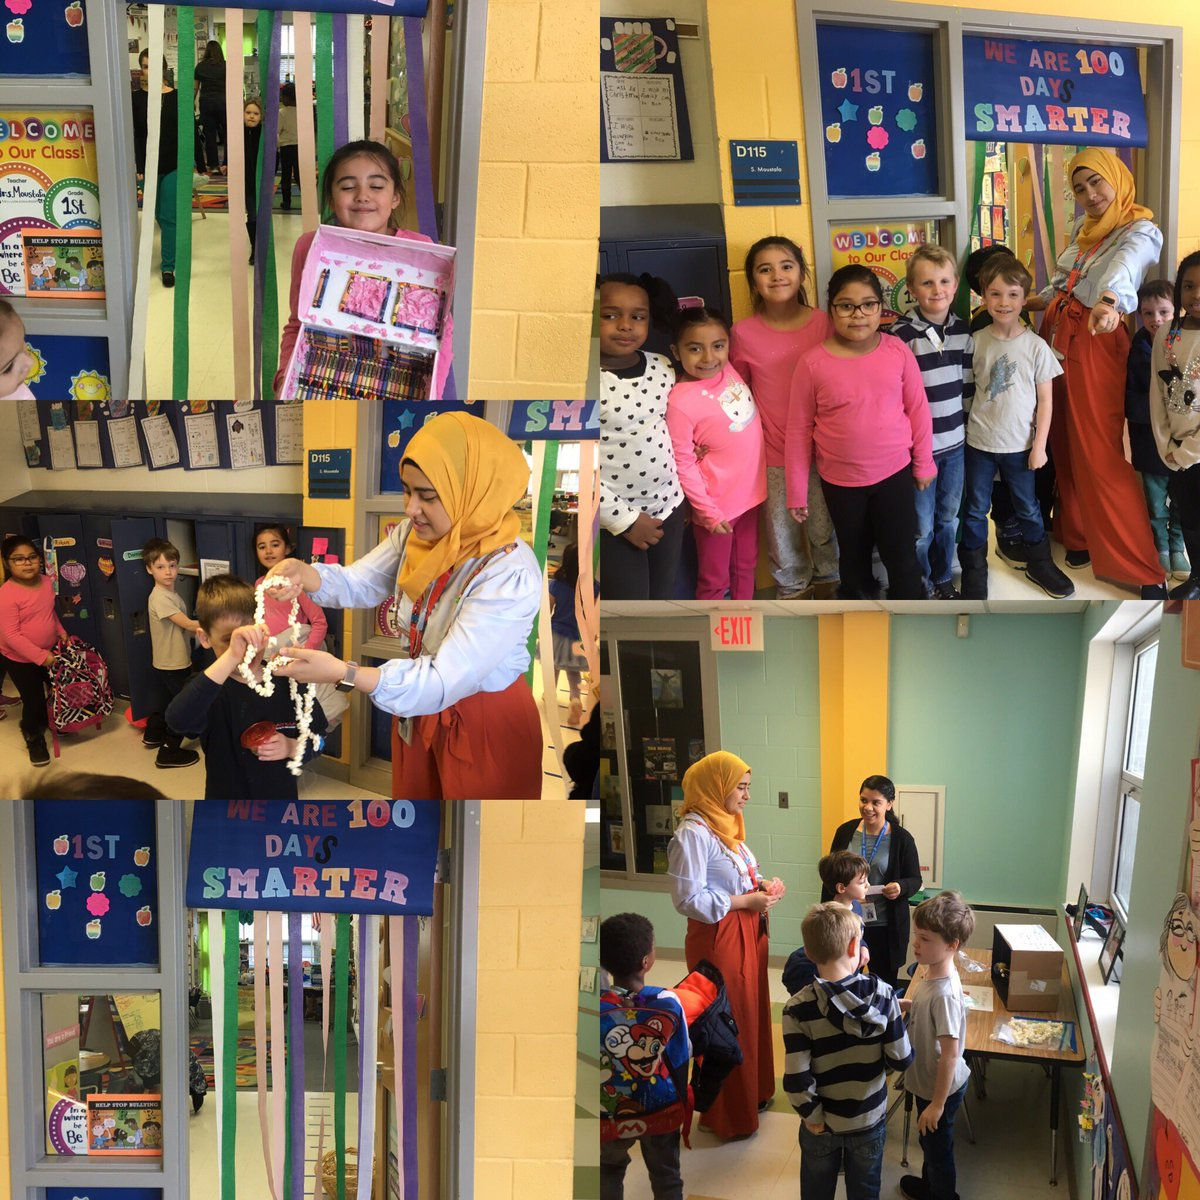 Mrs. Moustafa's class celebrates the 100th day of school😀<a target='_blank' href='http://twitter.com/GlebeAPS'>@GlebeAPS</a> <a target='_blank' href='http://twitter.com/GlebeITC'>@GlebeITC</a> <a target='_blank' href='http://search.twitter.com/search?q=APS100Days'><a target='_blank' href='https://twitter.com/hashtag/APS100Days?src=hash'>#APS100Days</a></a><a target='_blank' href='http://twitter.com/Glebepta'>@Glebepta</a> <a target='_blank' href='https://t.co/EePMAHxUnl'>https://t.co/EePMAHxUnl</a>